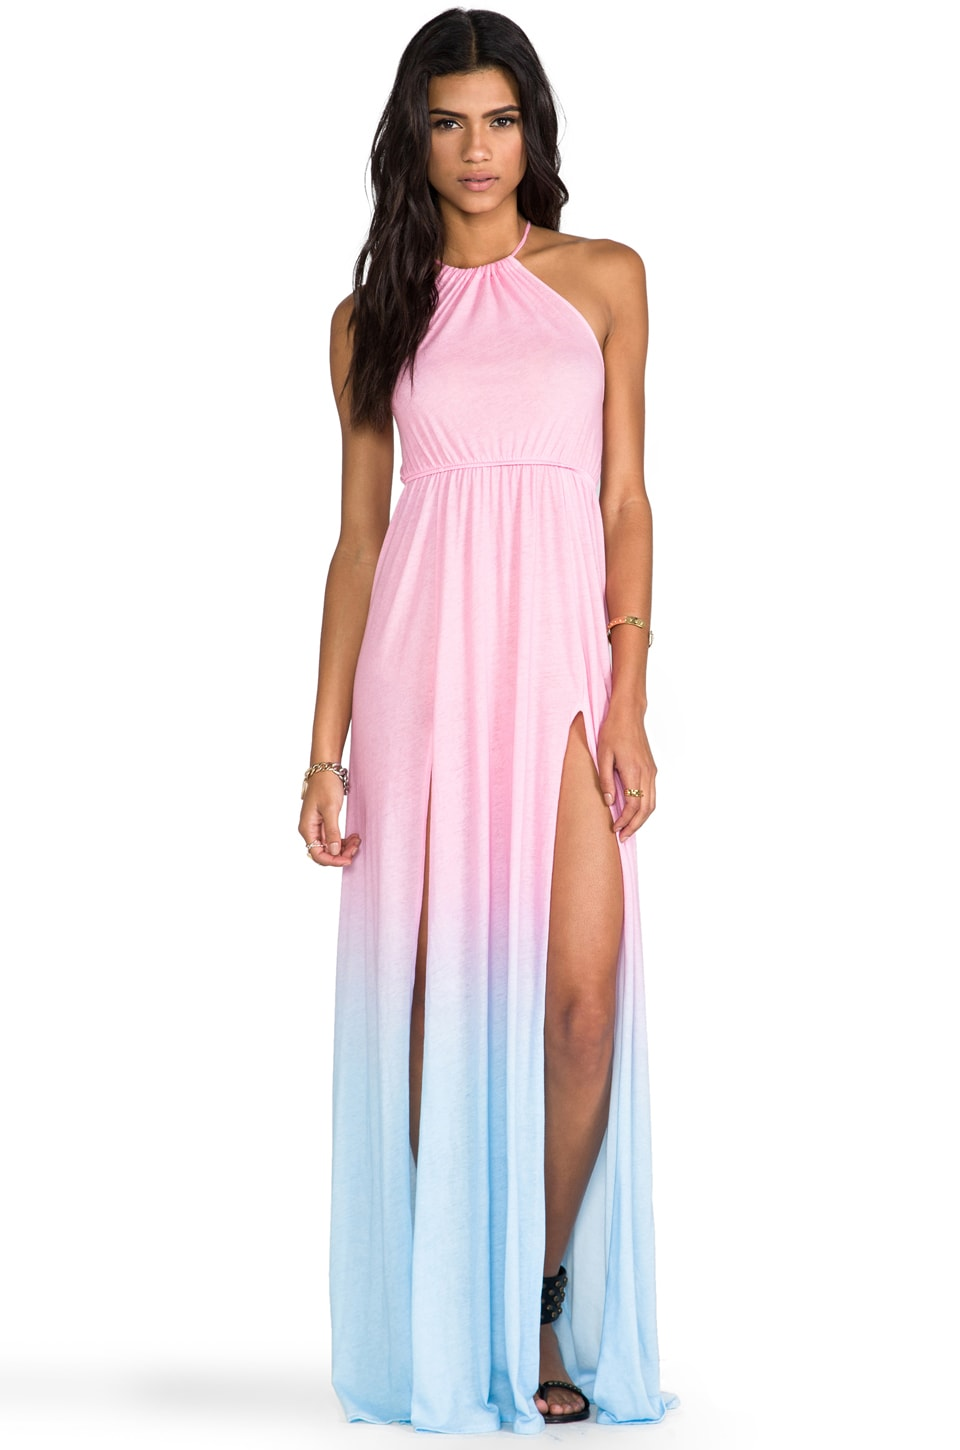 Wildfox Couture I Am The Ocean Gown in Multi